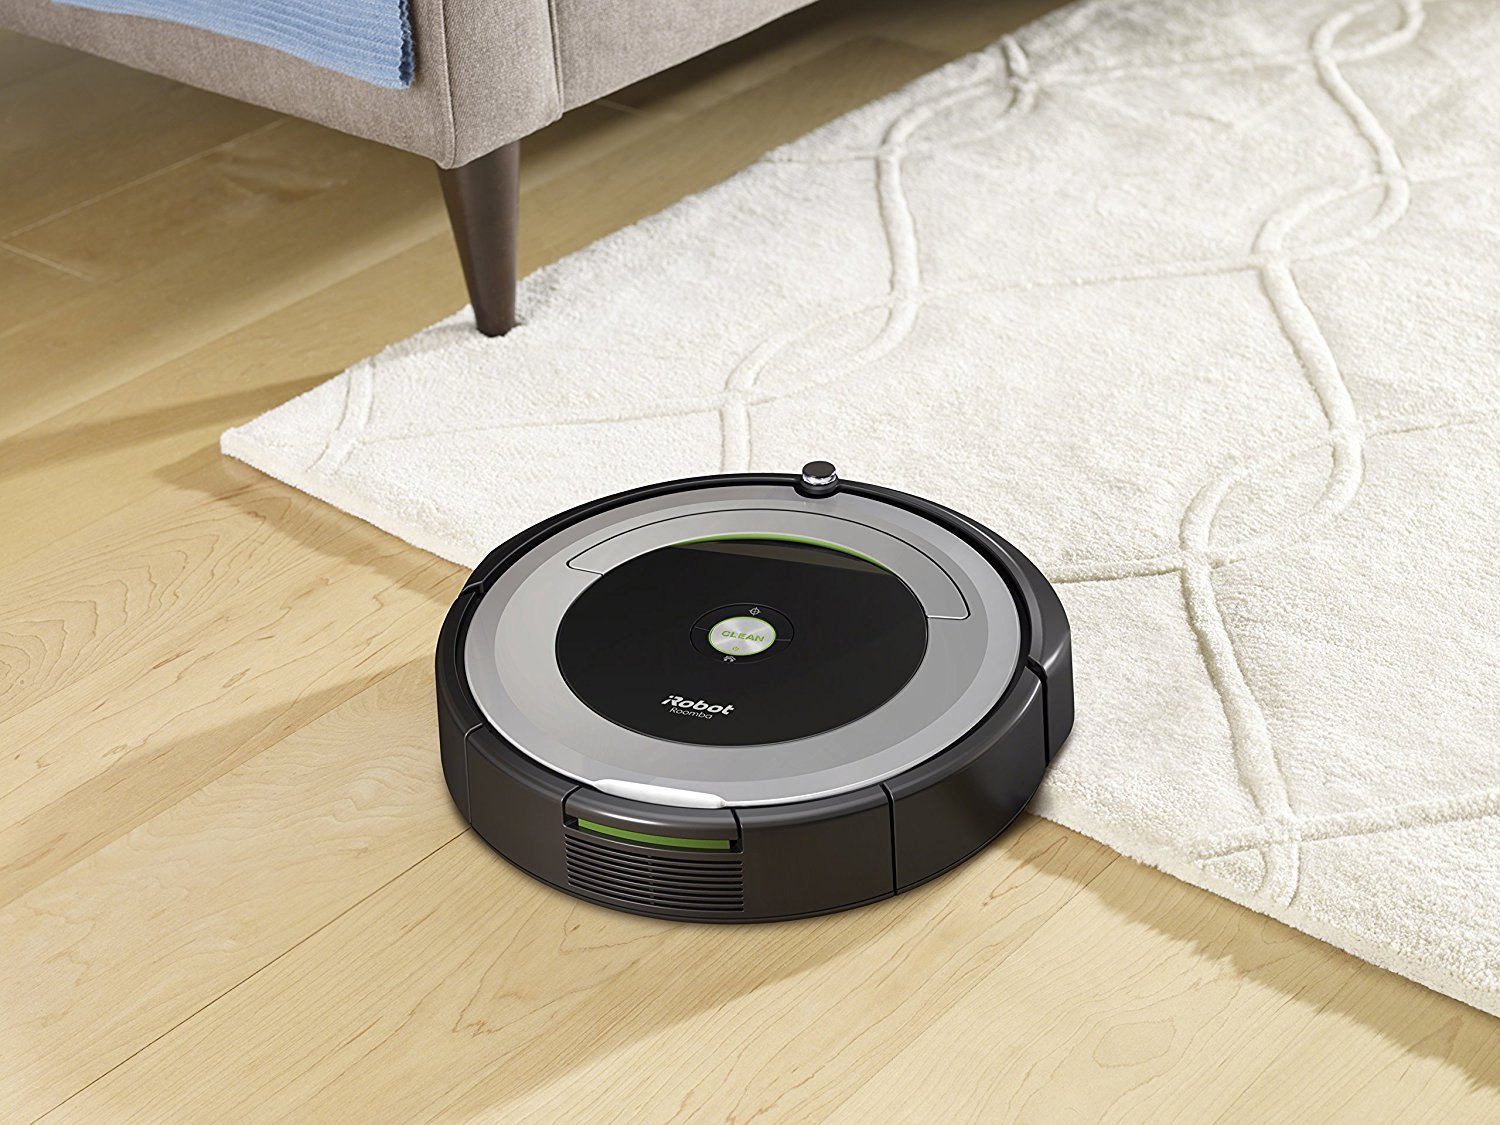 iRobot Roomba 690 Wi-Fi Connected Robotic Vacuum Cleaner + 1 Dual Mode Virtual Wall Barrier (With Batteries) + Extra Filter + More by iRobot (Image #4)